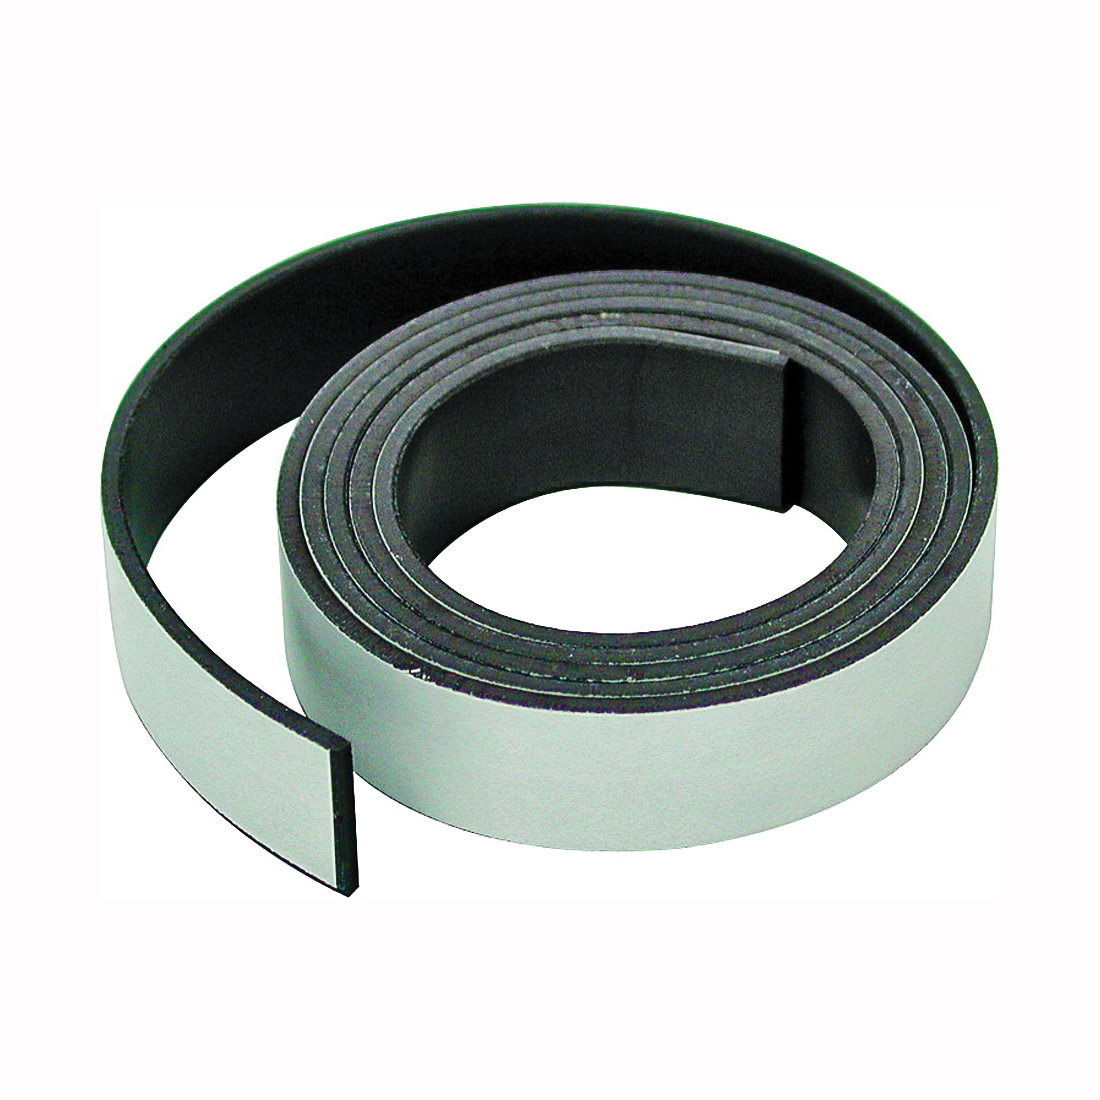 Picture of Magnet Source 07011 Magnetic Tape, 30 in L, 1/2 in W